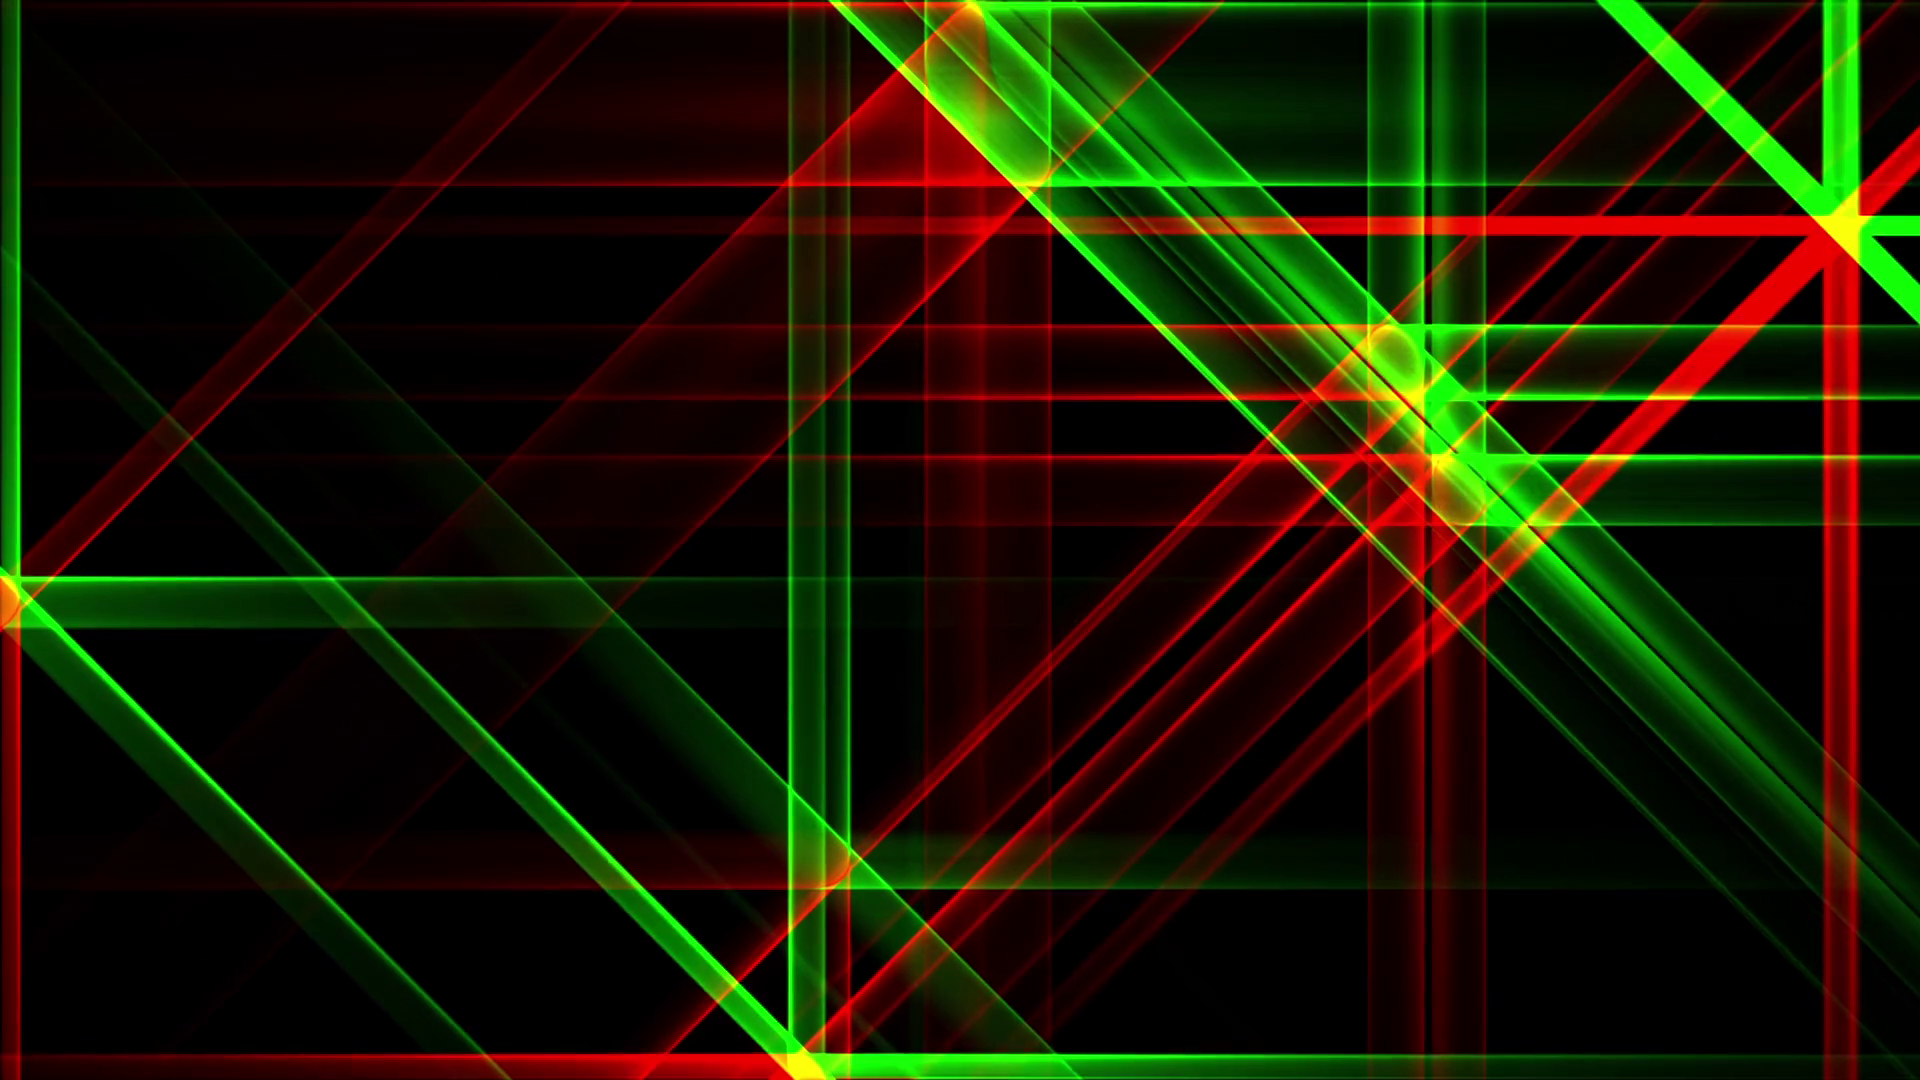 Red Green Night Abstract Lights Flashes Rays Stars VJ Motion ...